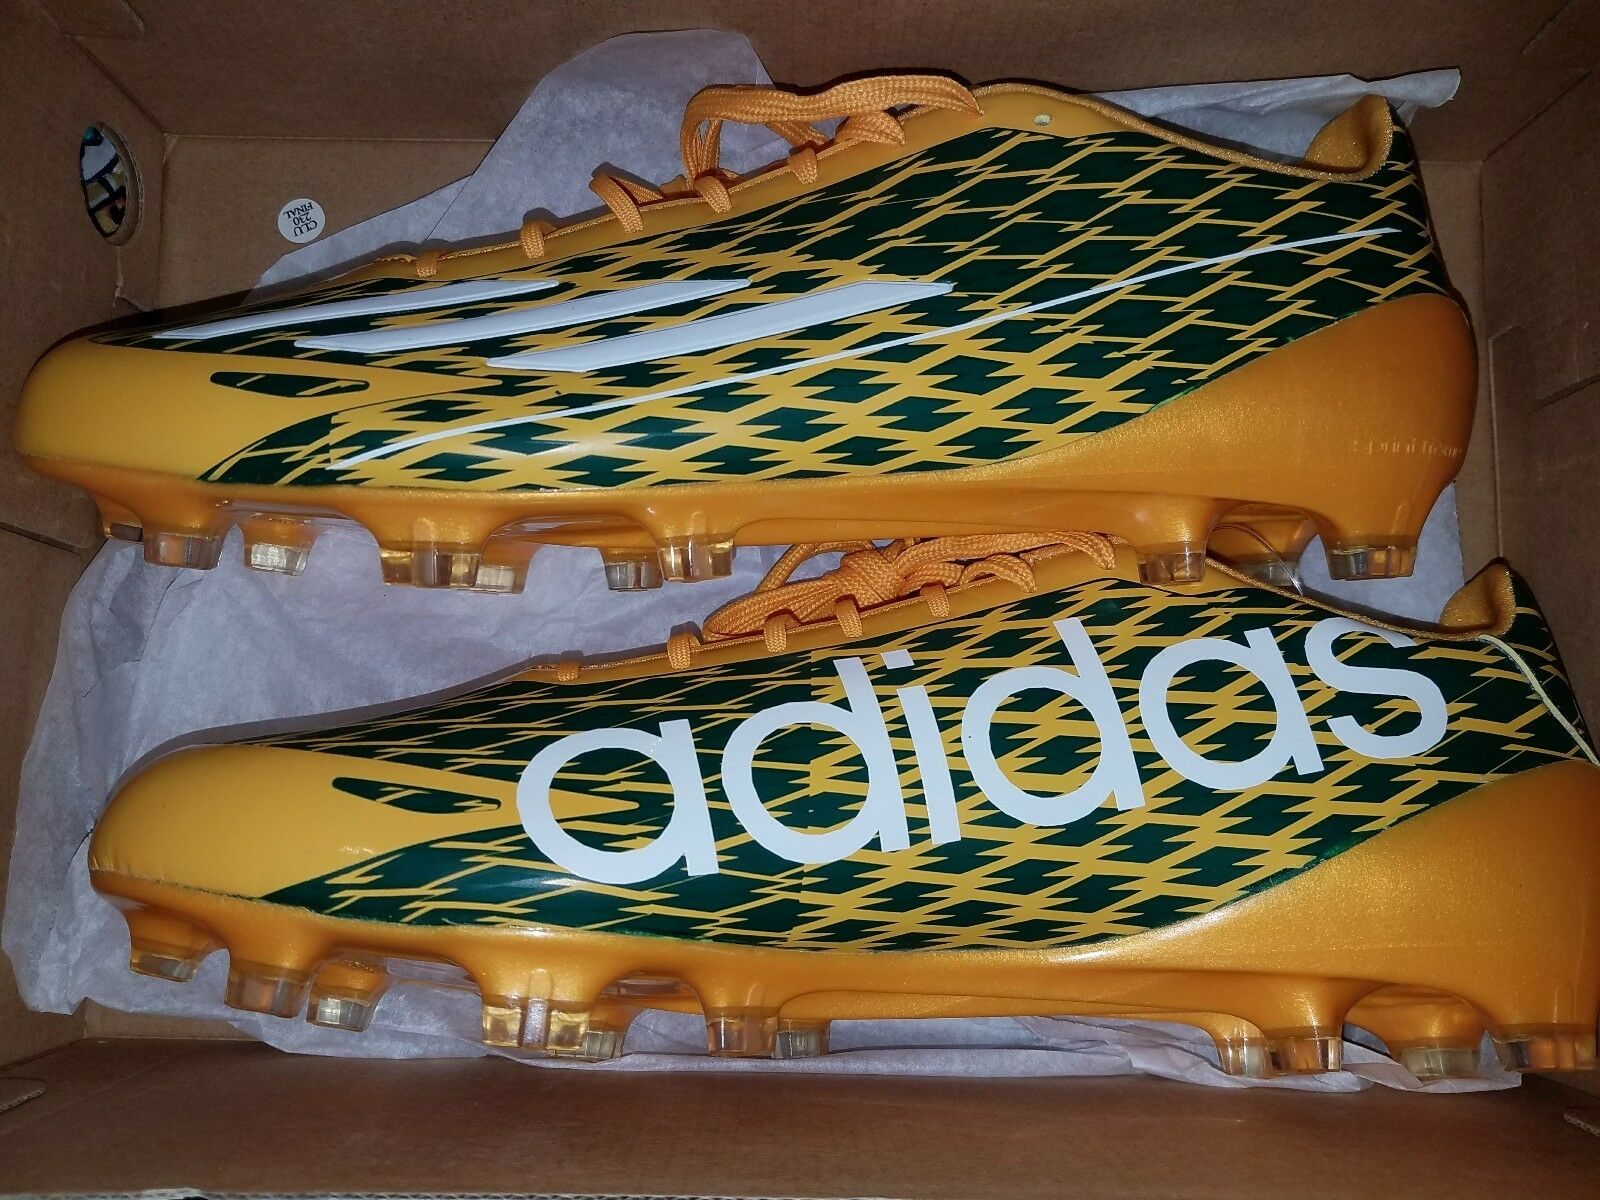 Adidas ASP 5-Star 4.0 Sprintframe Football Cleats Size 12.5 gold Green White